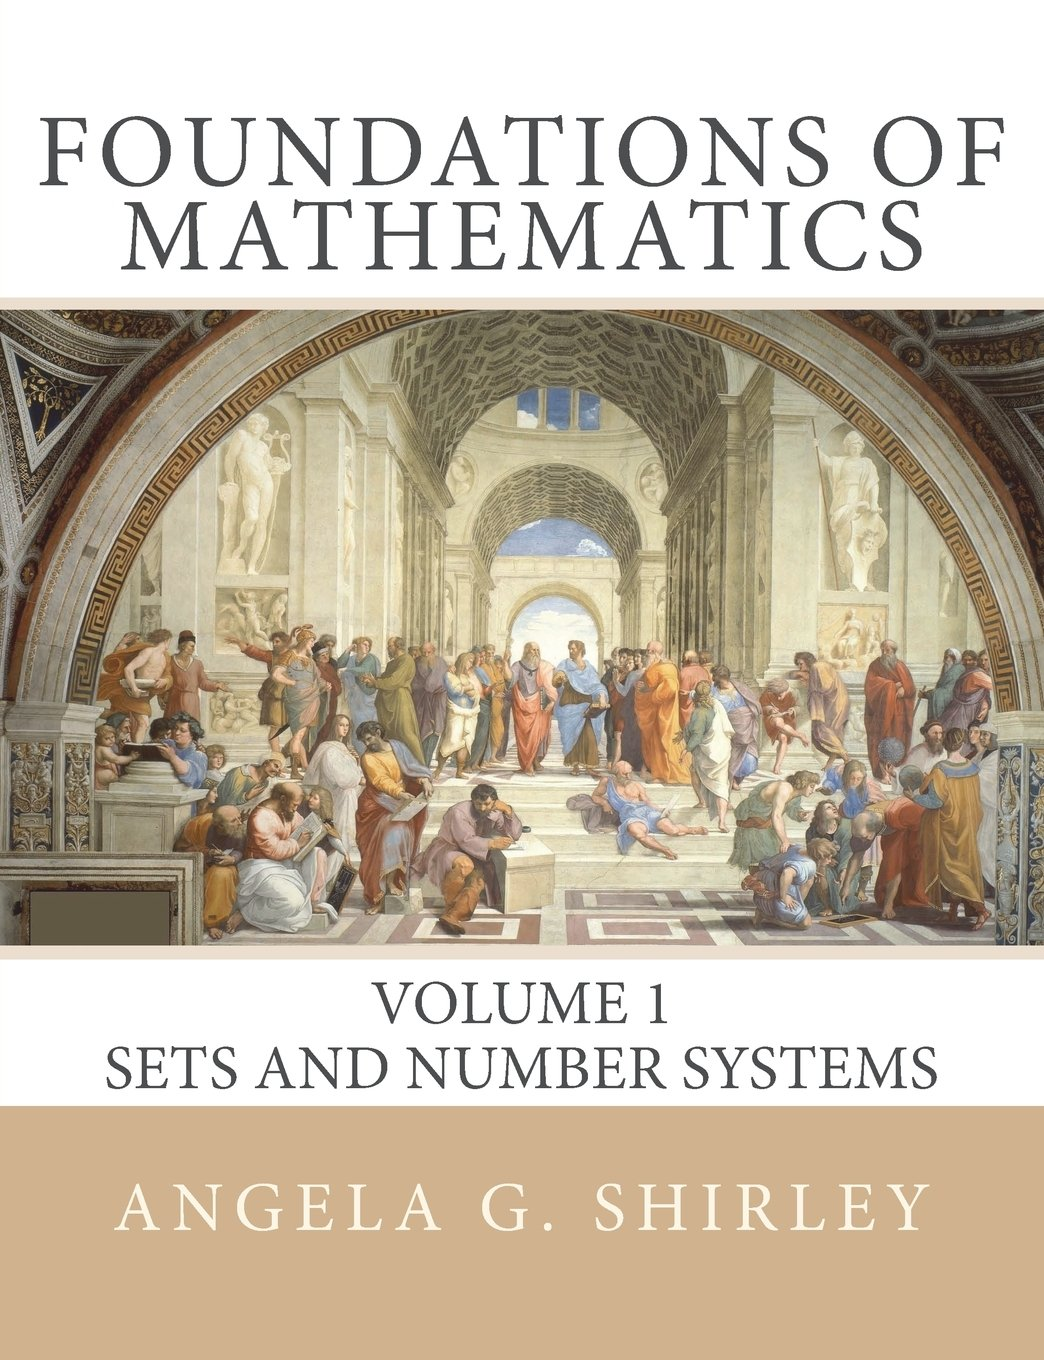 Foundations of Mathematics: Volume 1, Sets and Number Systems pdf